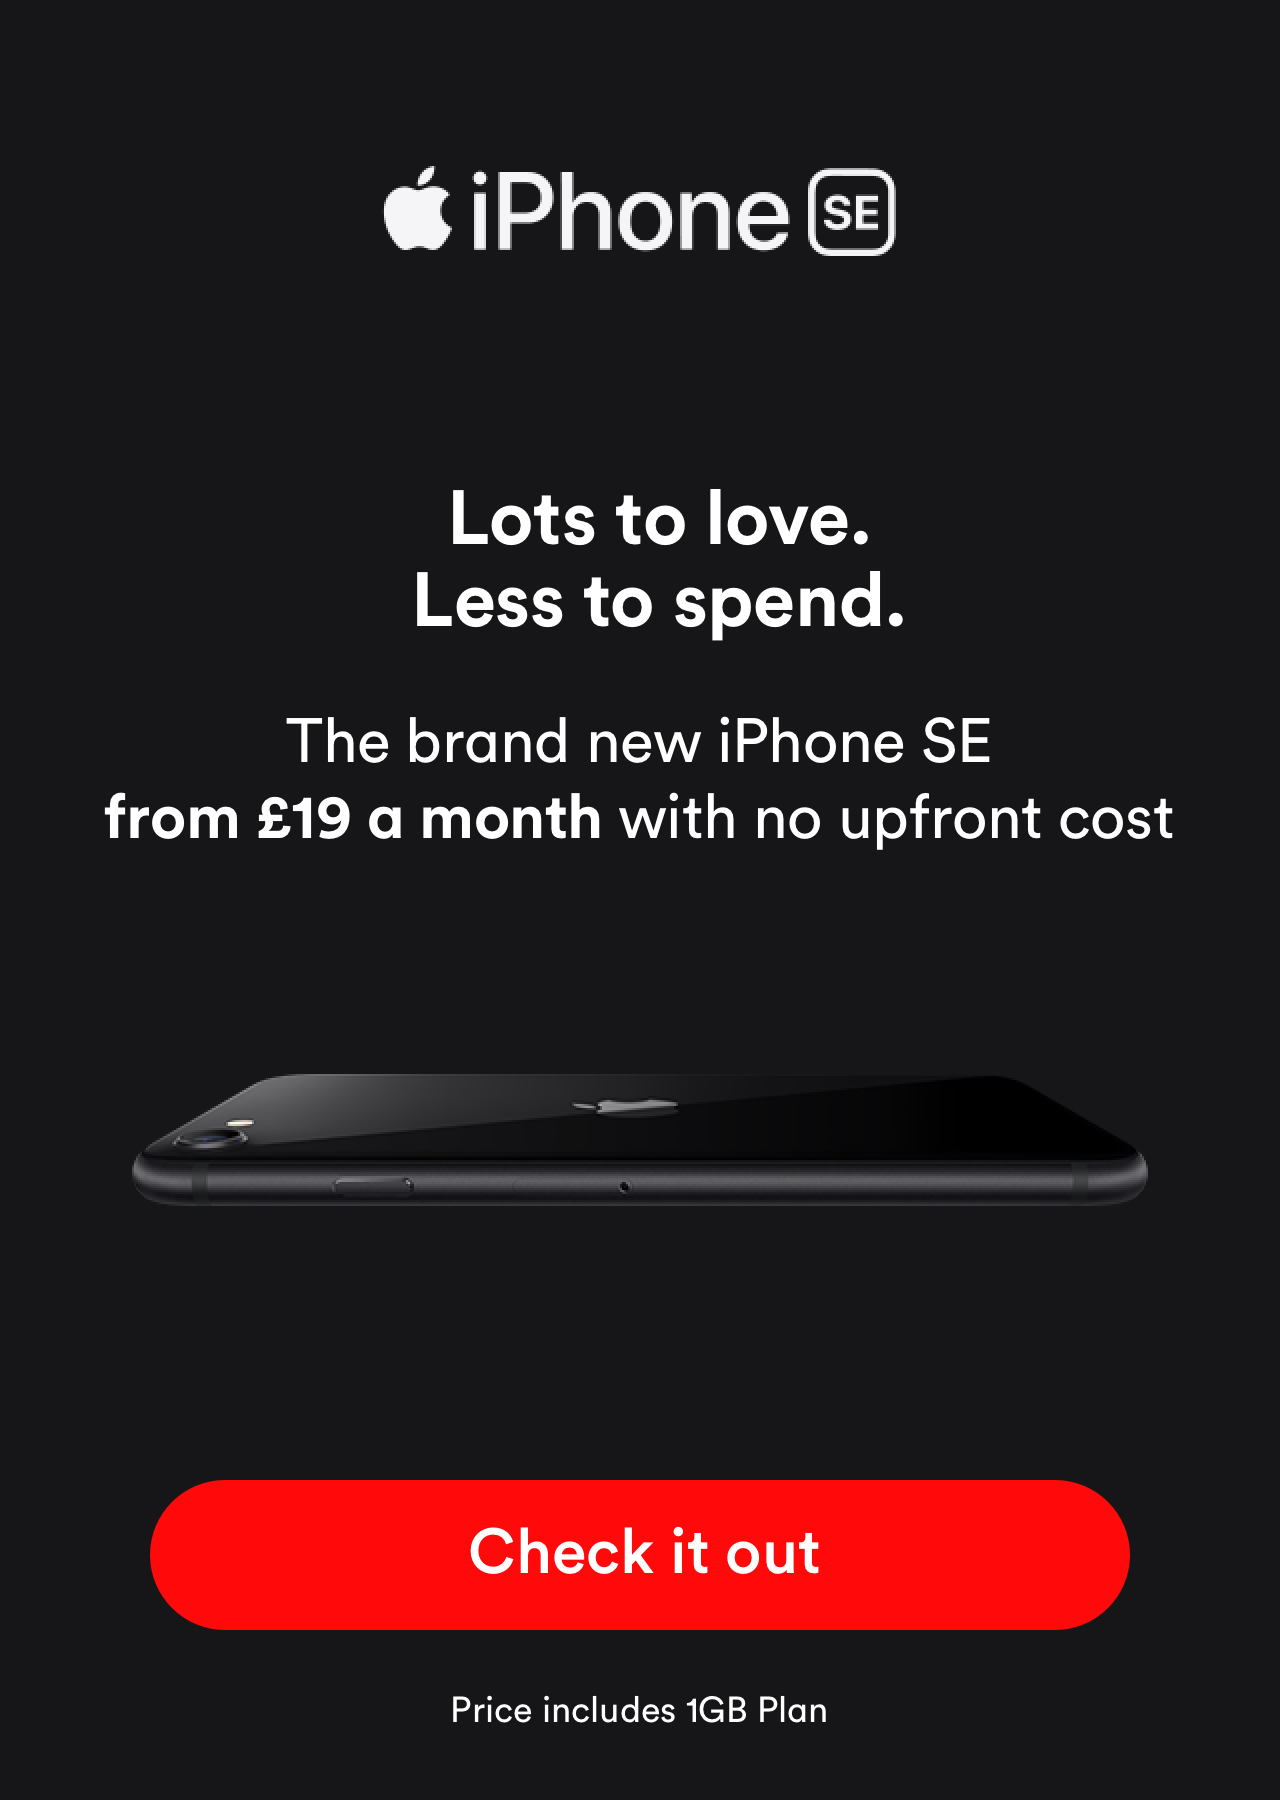 iPhone SE from £19 a month